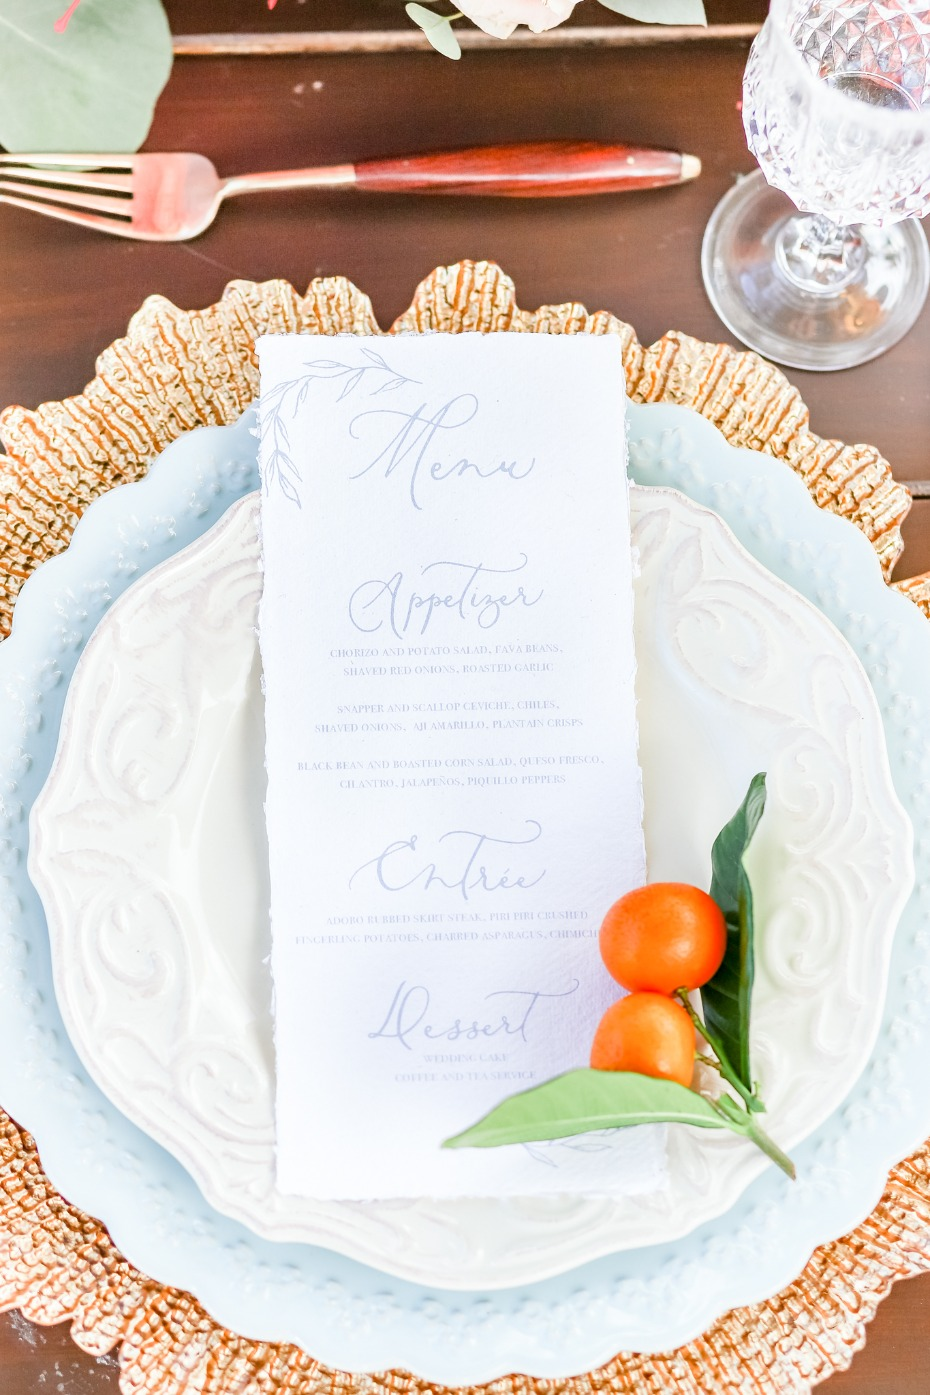 Wedding menu and kumquats